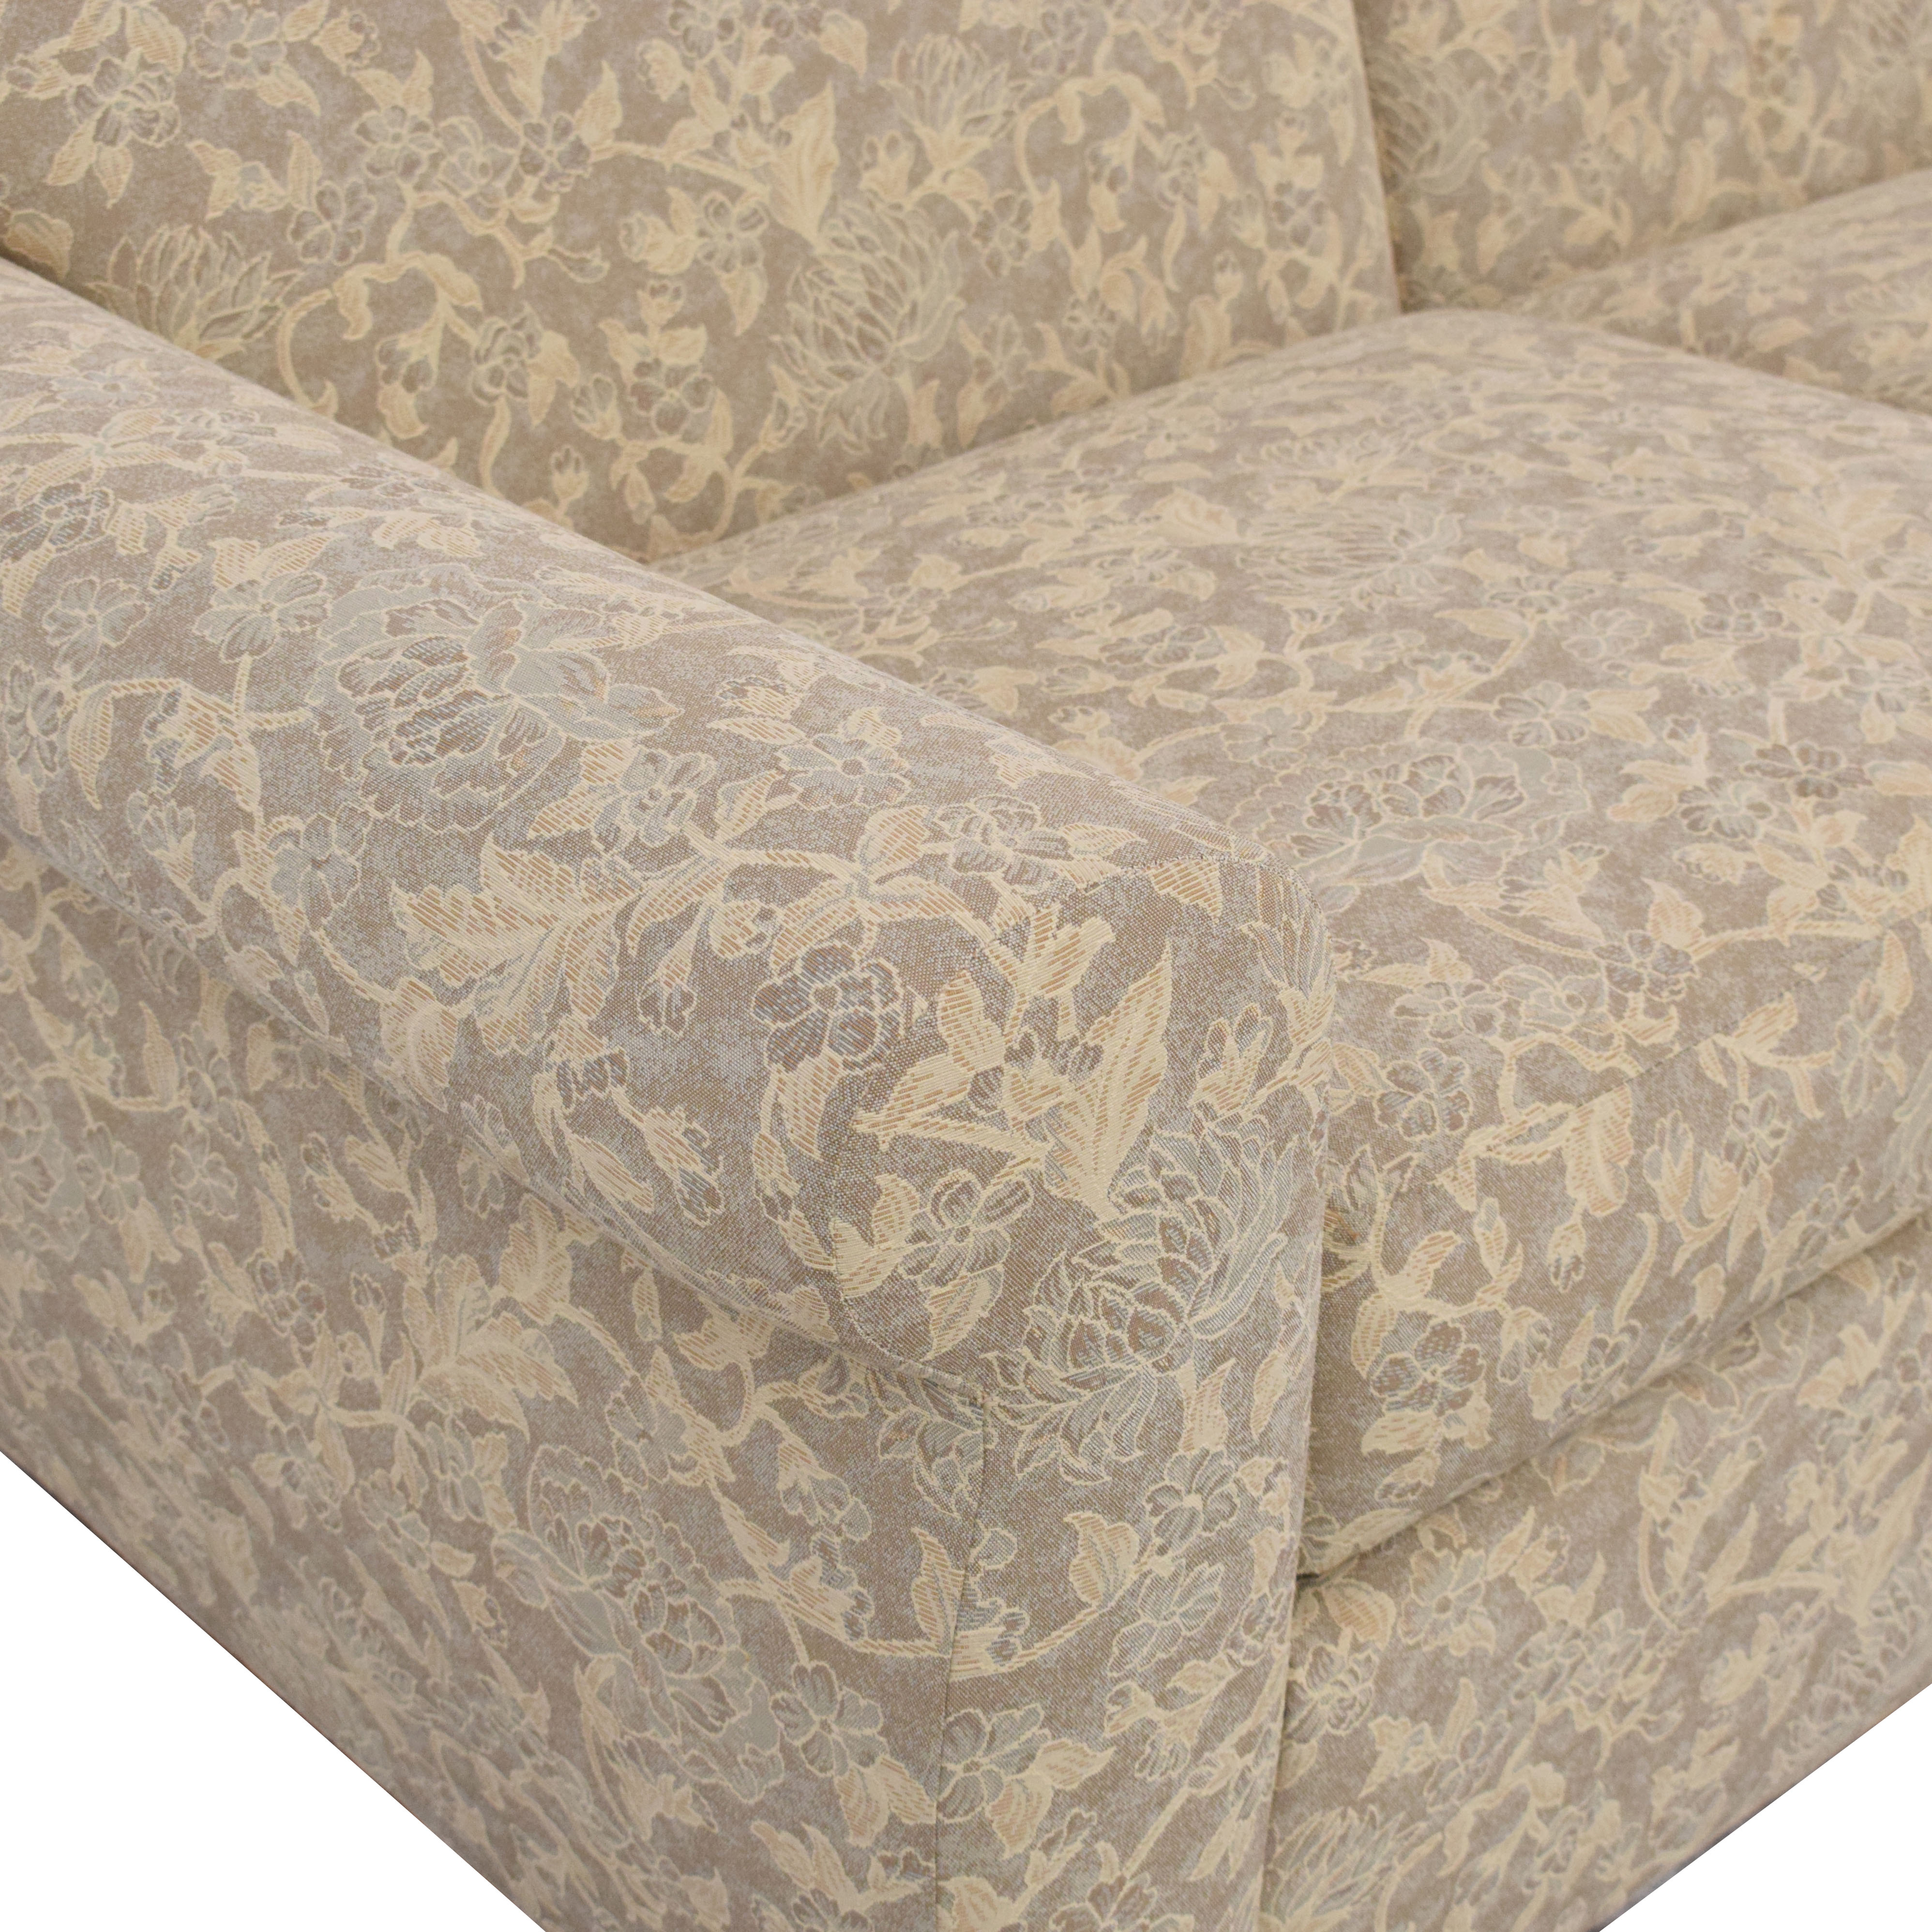 Bright Bright Chair Company Olli B Loveseat coupon